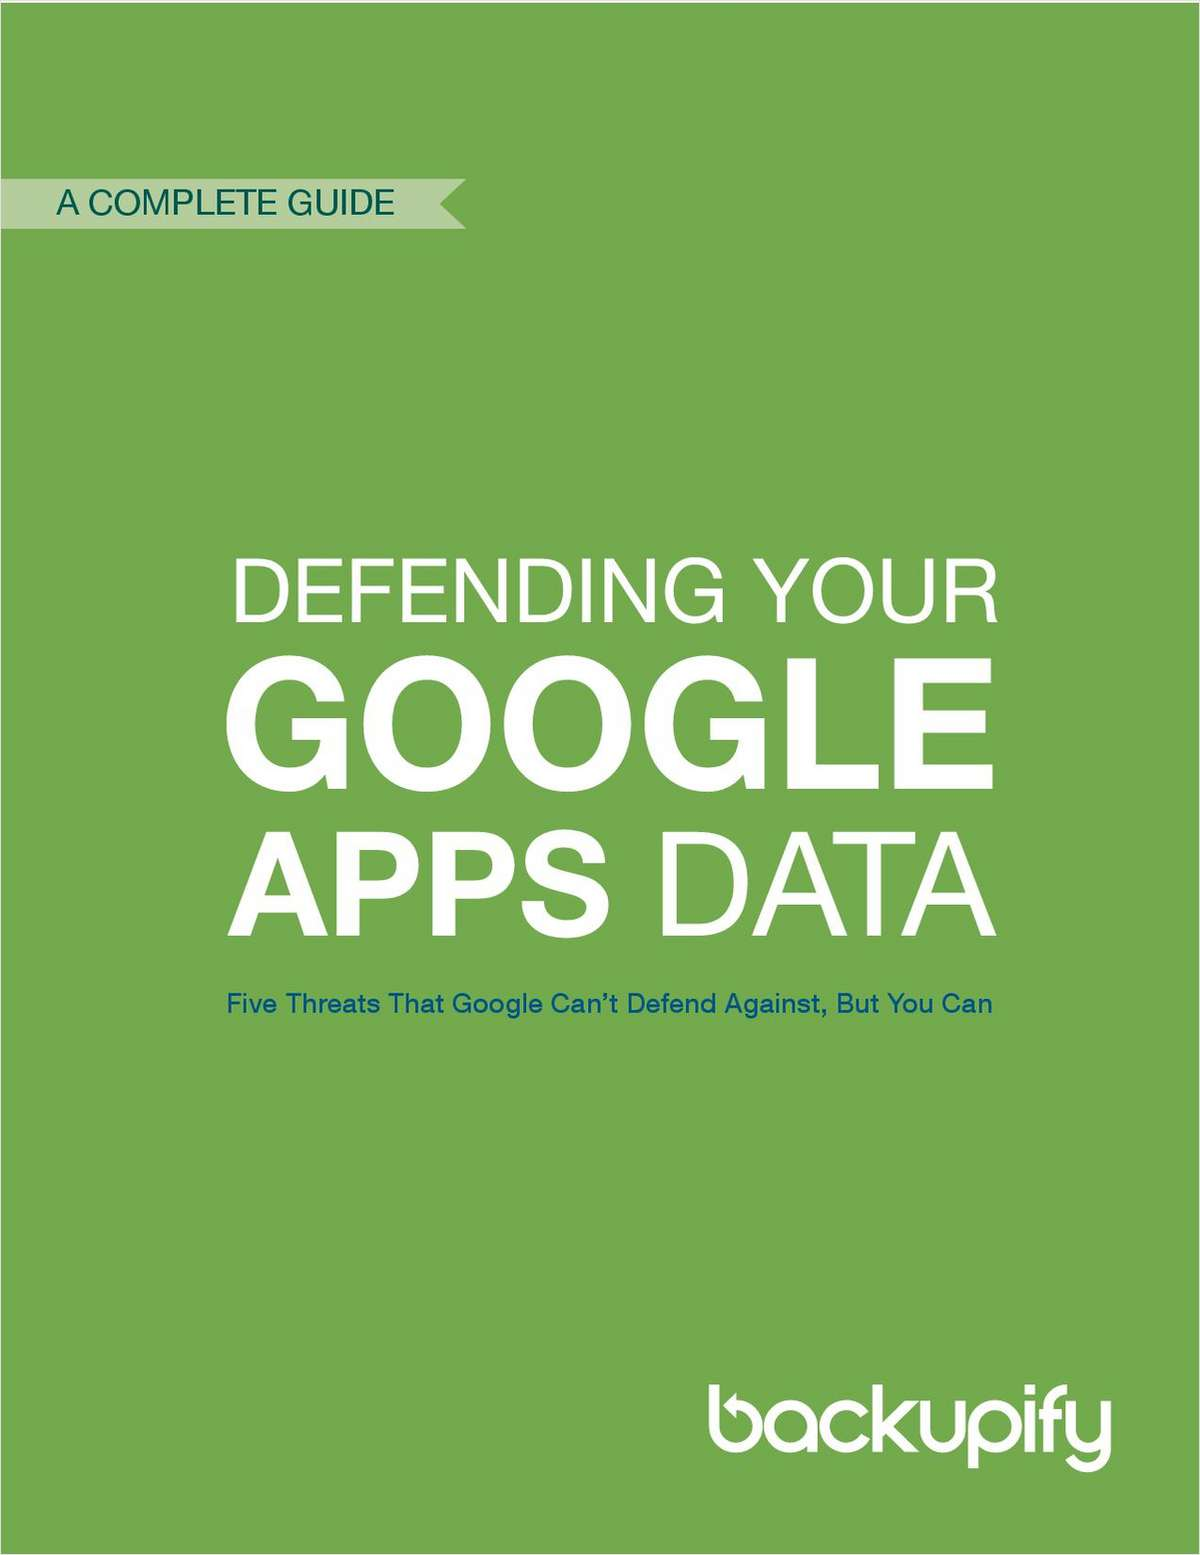 The Guide to Defending Your Google Apps Data